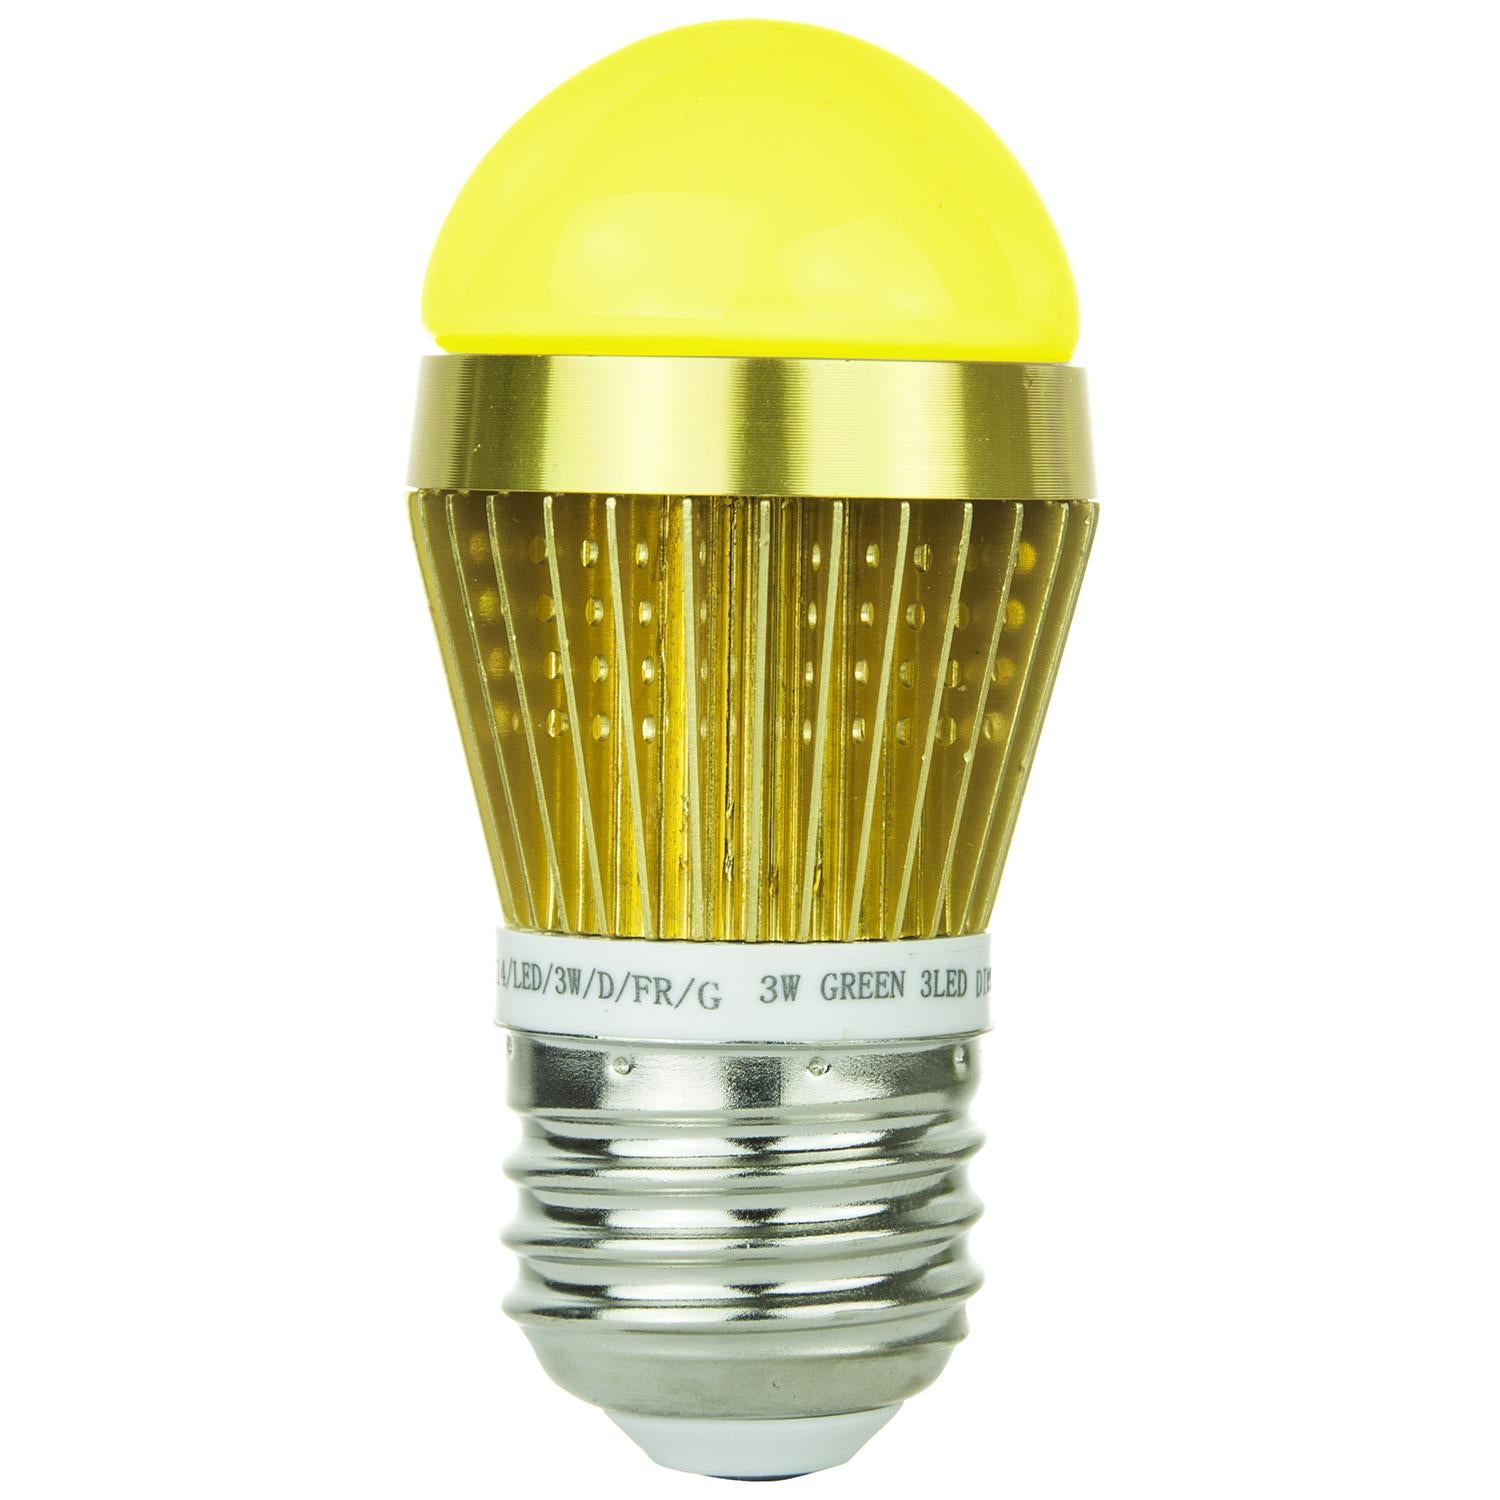 SUNLITE 80347-SU LED 3w Frosted S14 Sign Light Bulbs Yellow Light